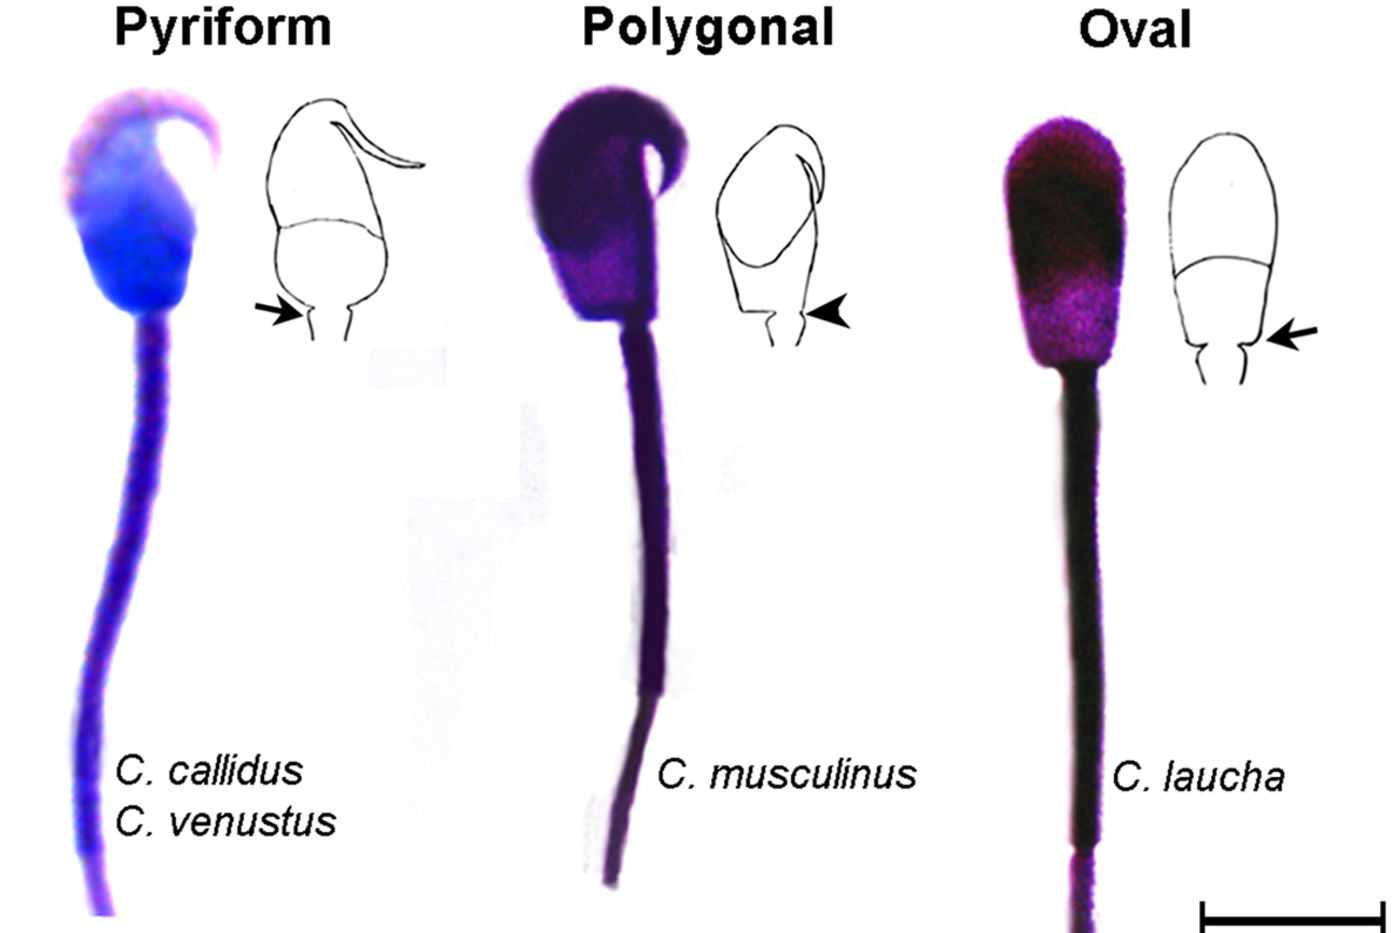 A graphic shows three different rodent sperm shapes. Pyriform has a hooked top with a centered tail; polygonal has a hooked top with tail shifted to the right; and oval is smooth on the top with a centered tail. The species examined are C. callidus, C. venustus, C. musculinus, and C. laucha.